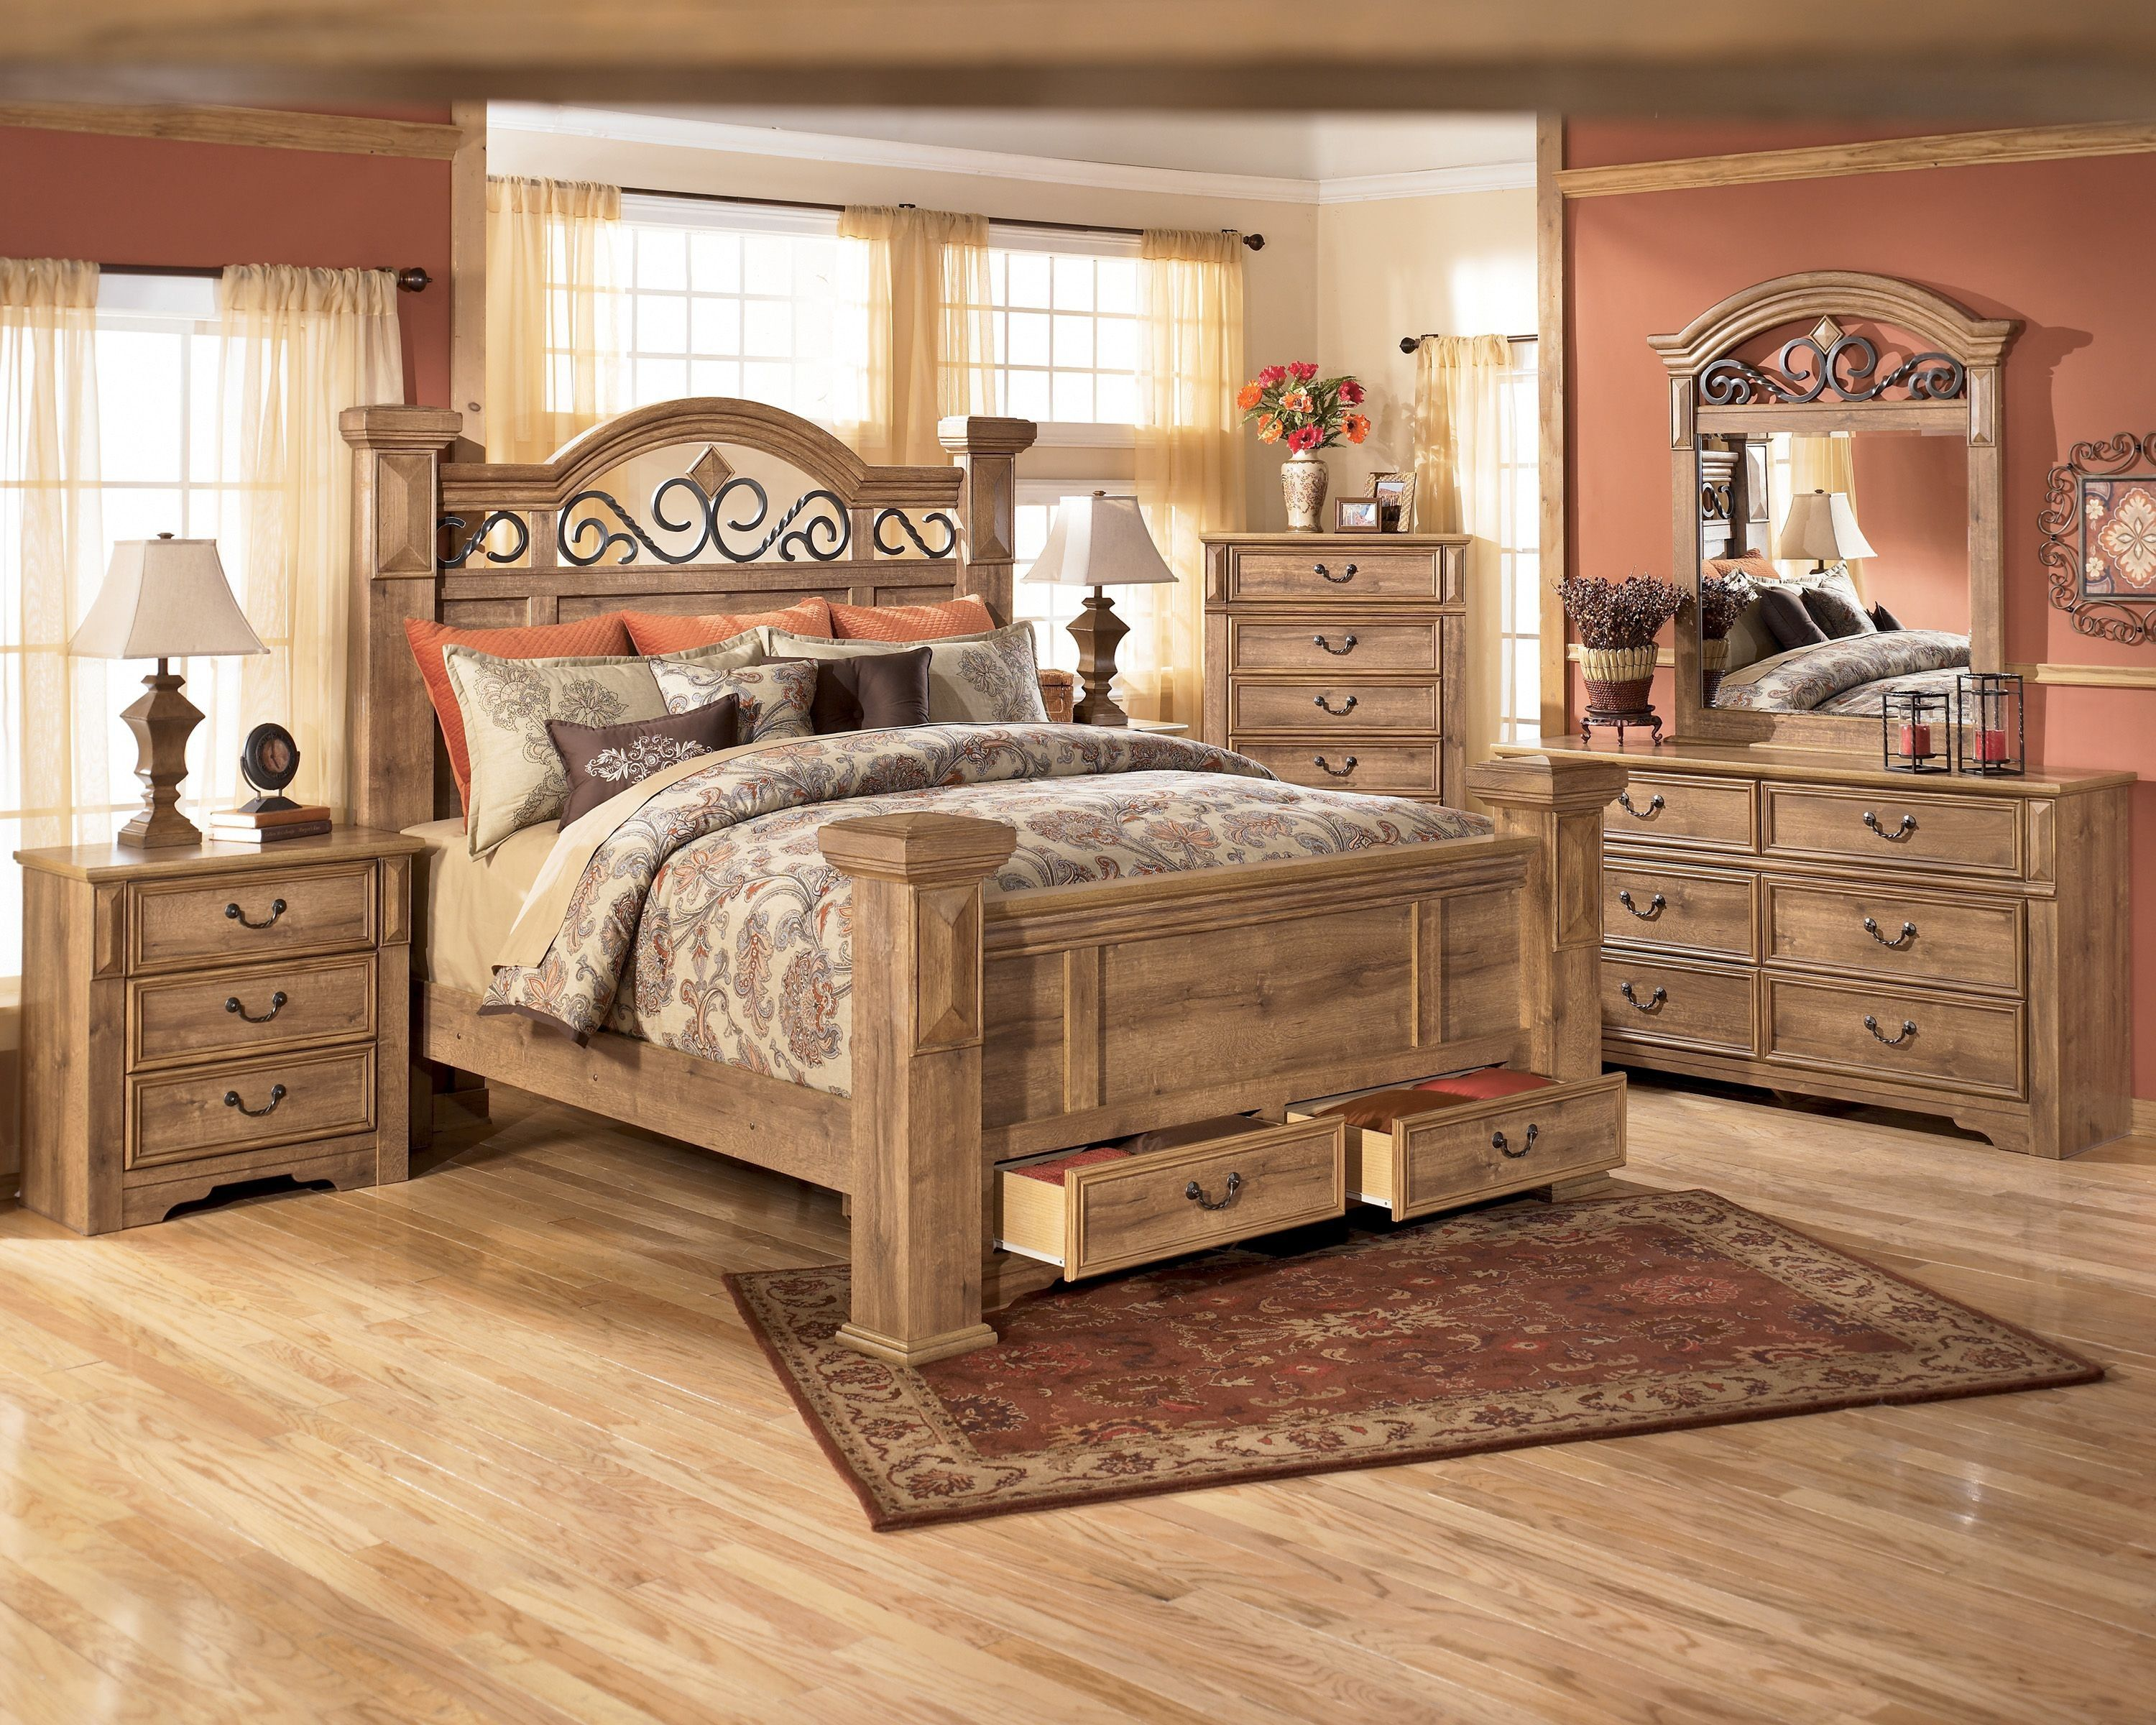 Inspirational Rustic Bedroom Sets King